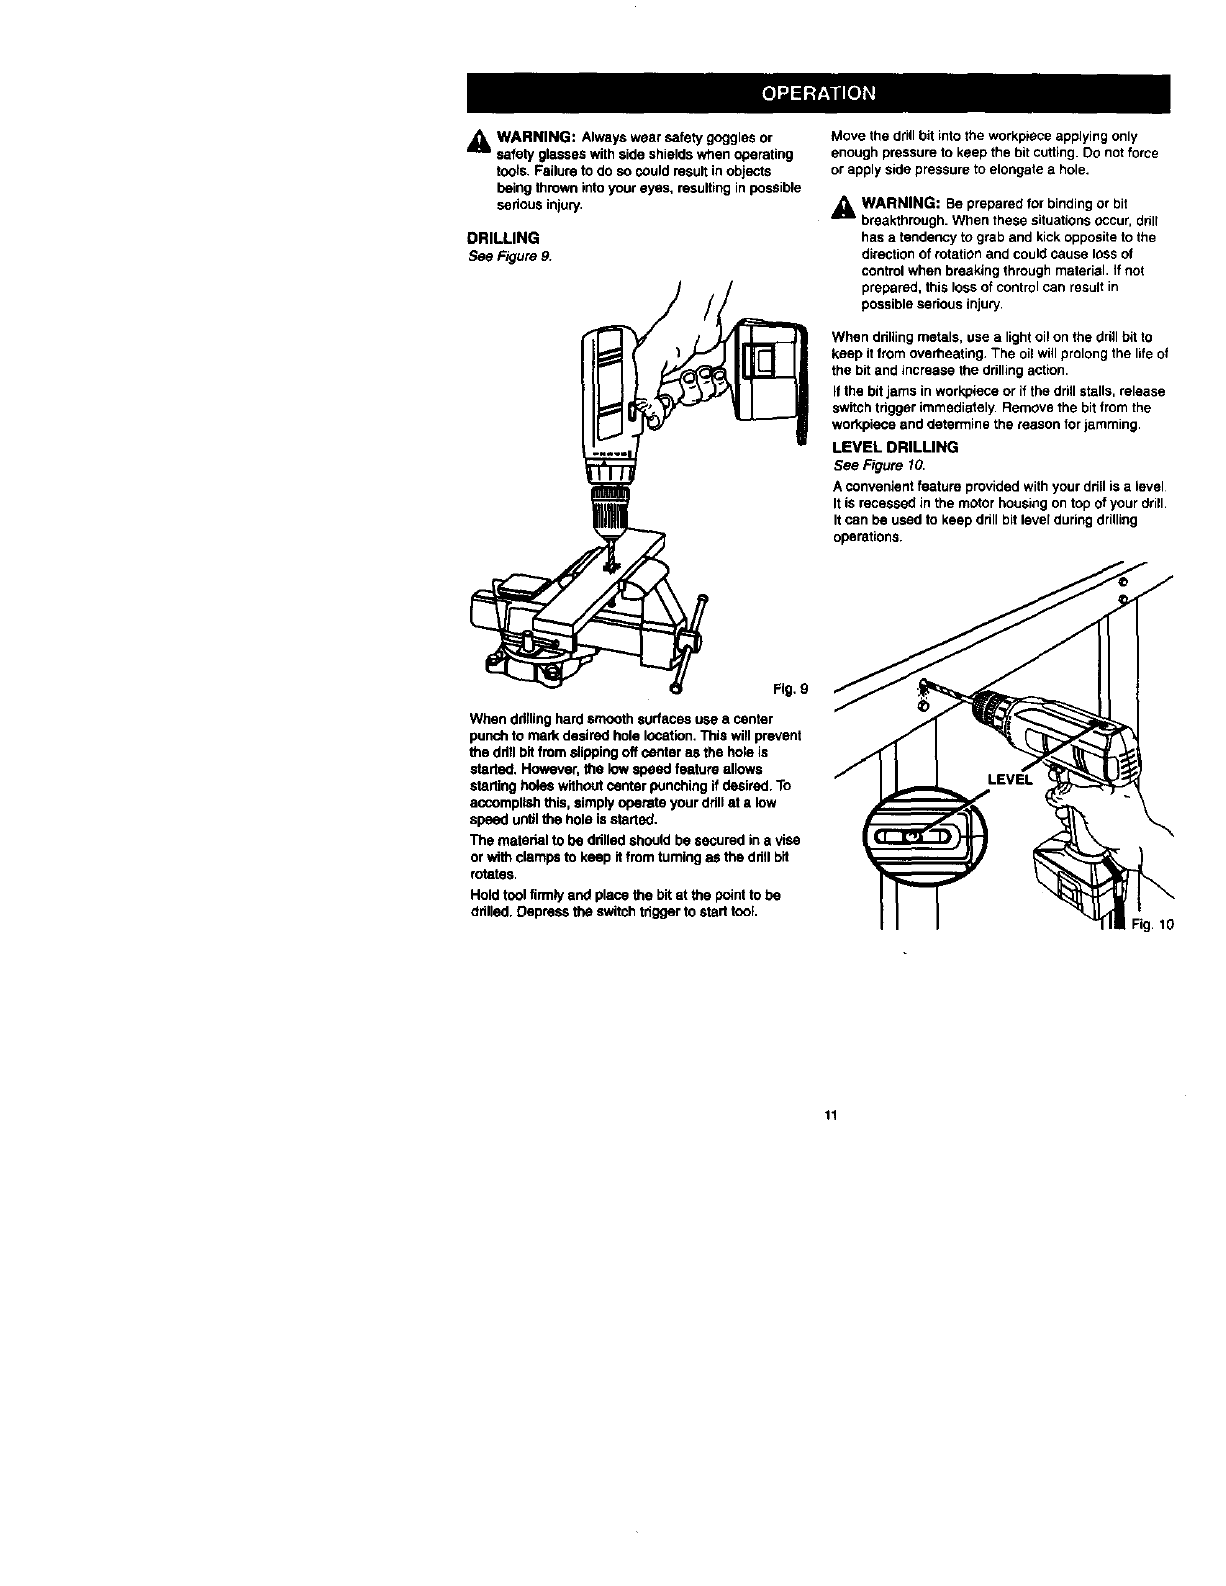 Page 11 of Craftsman Drill 973.111330 User Guide